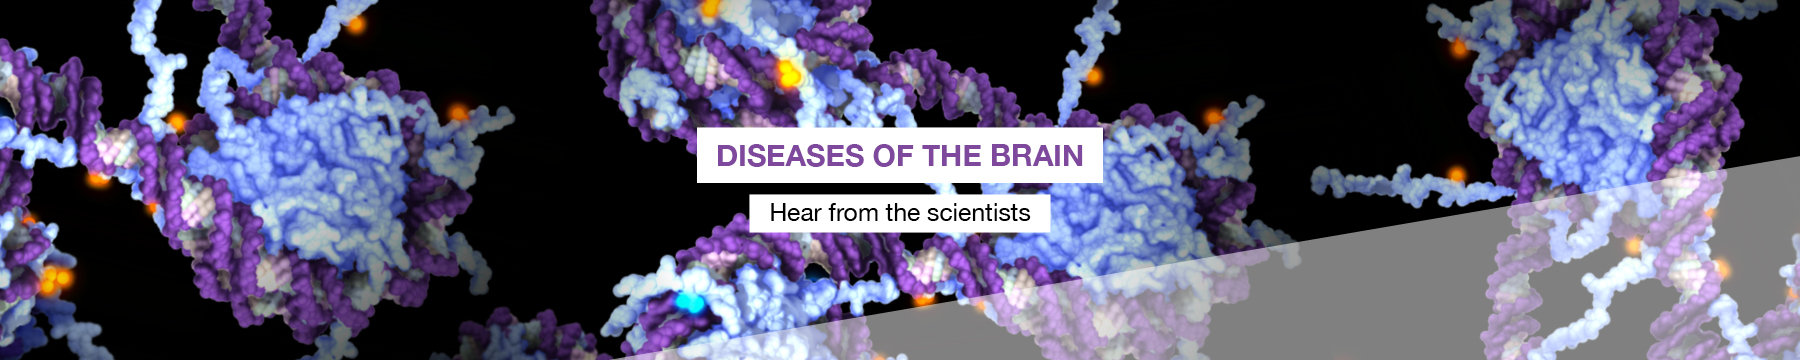 Diseases of the brain: hear from the scientists